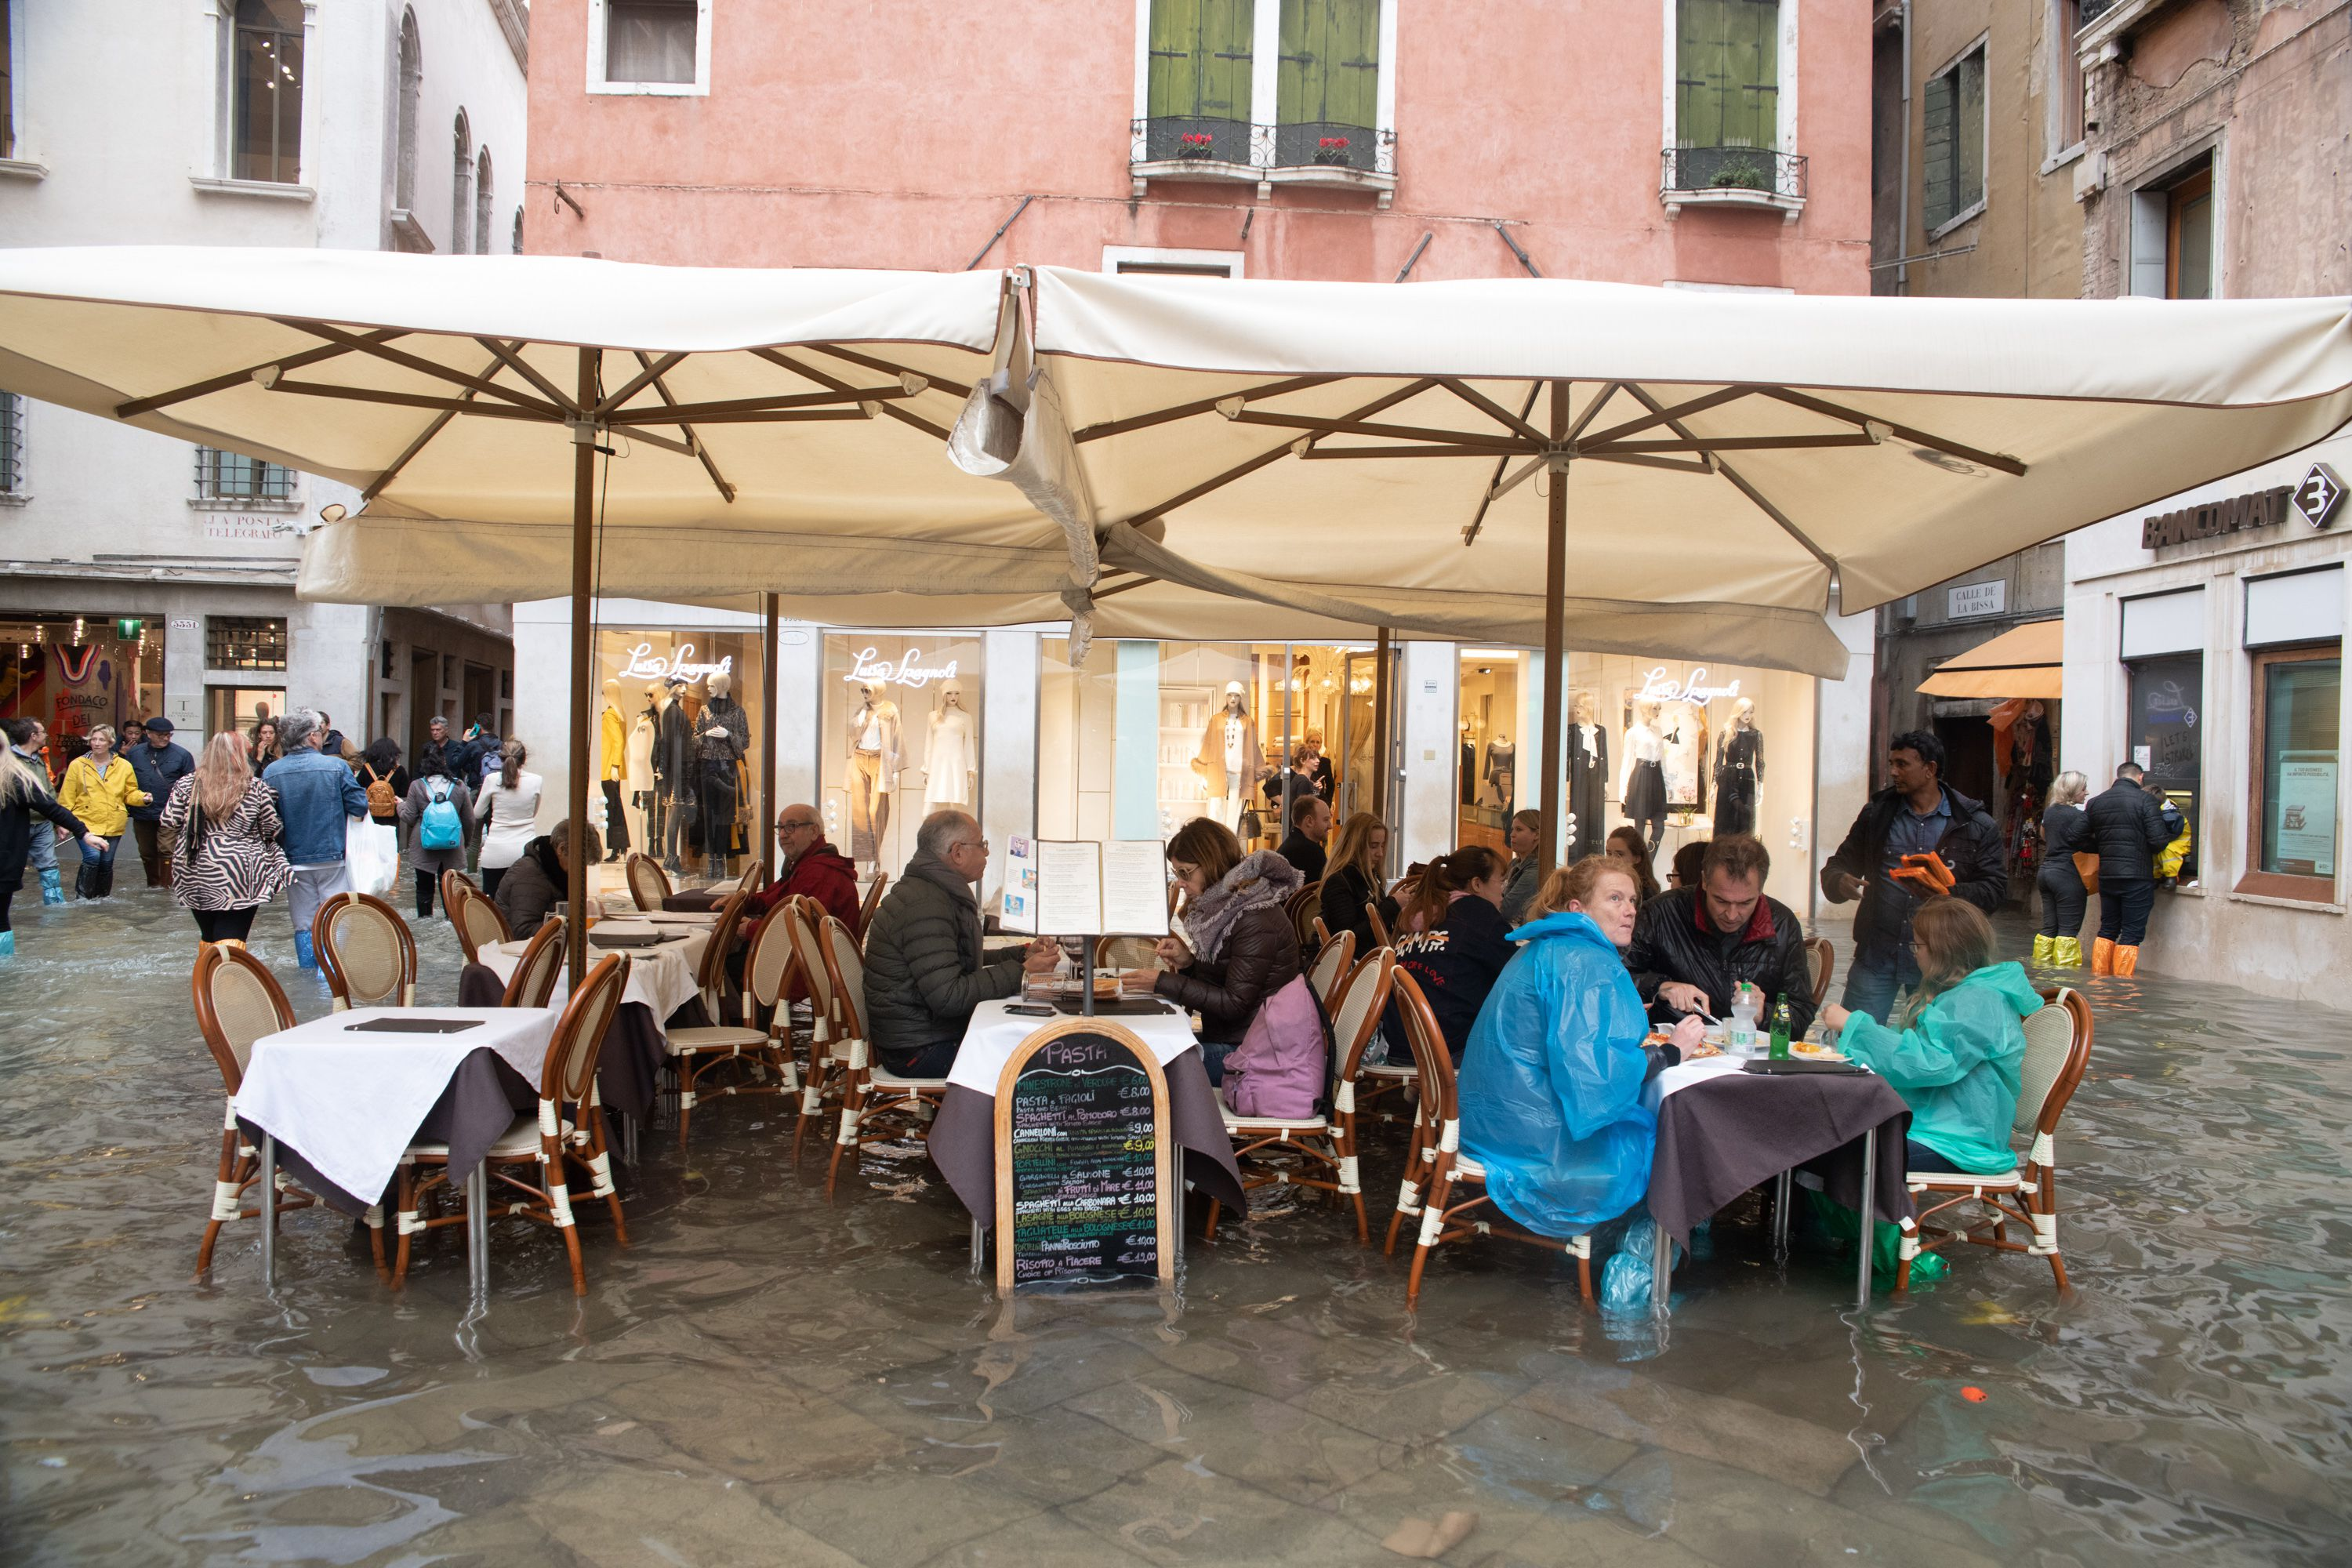 People eating outside in Venice in Ponchos in flooded water.